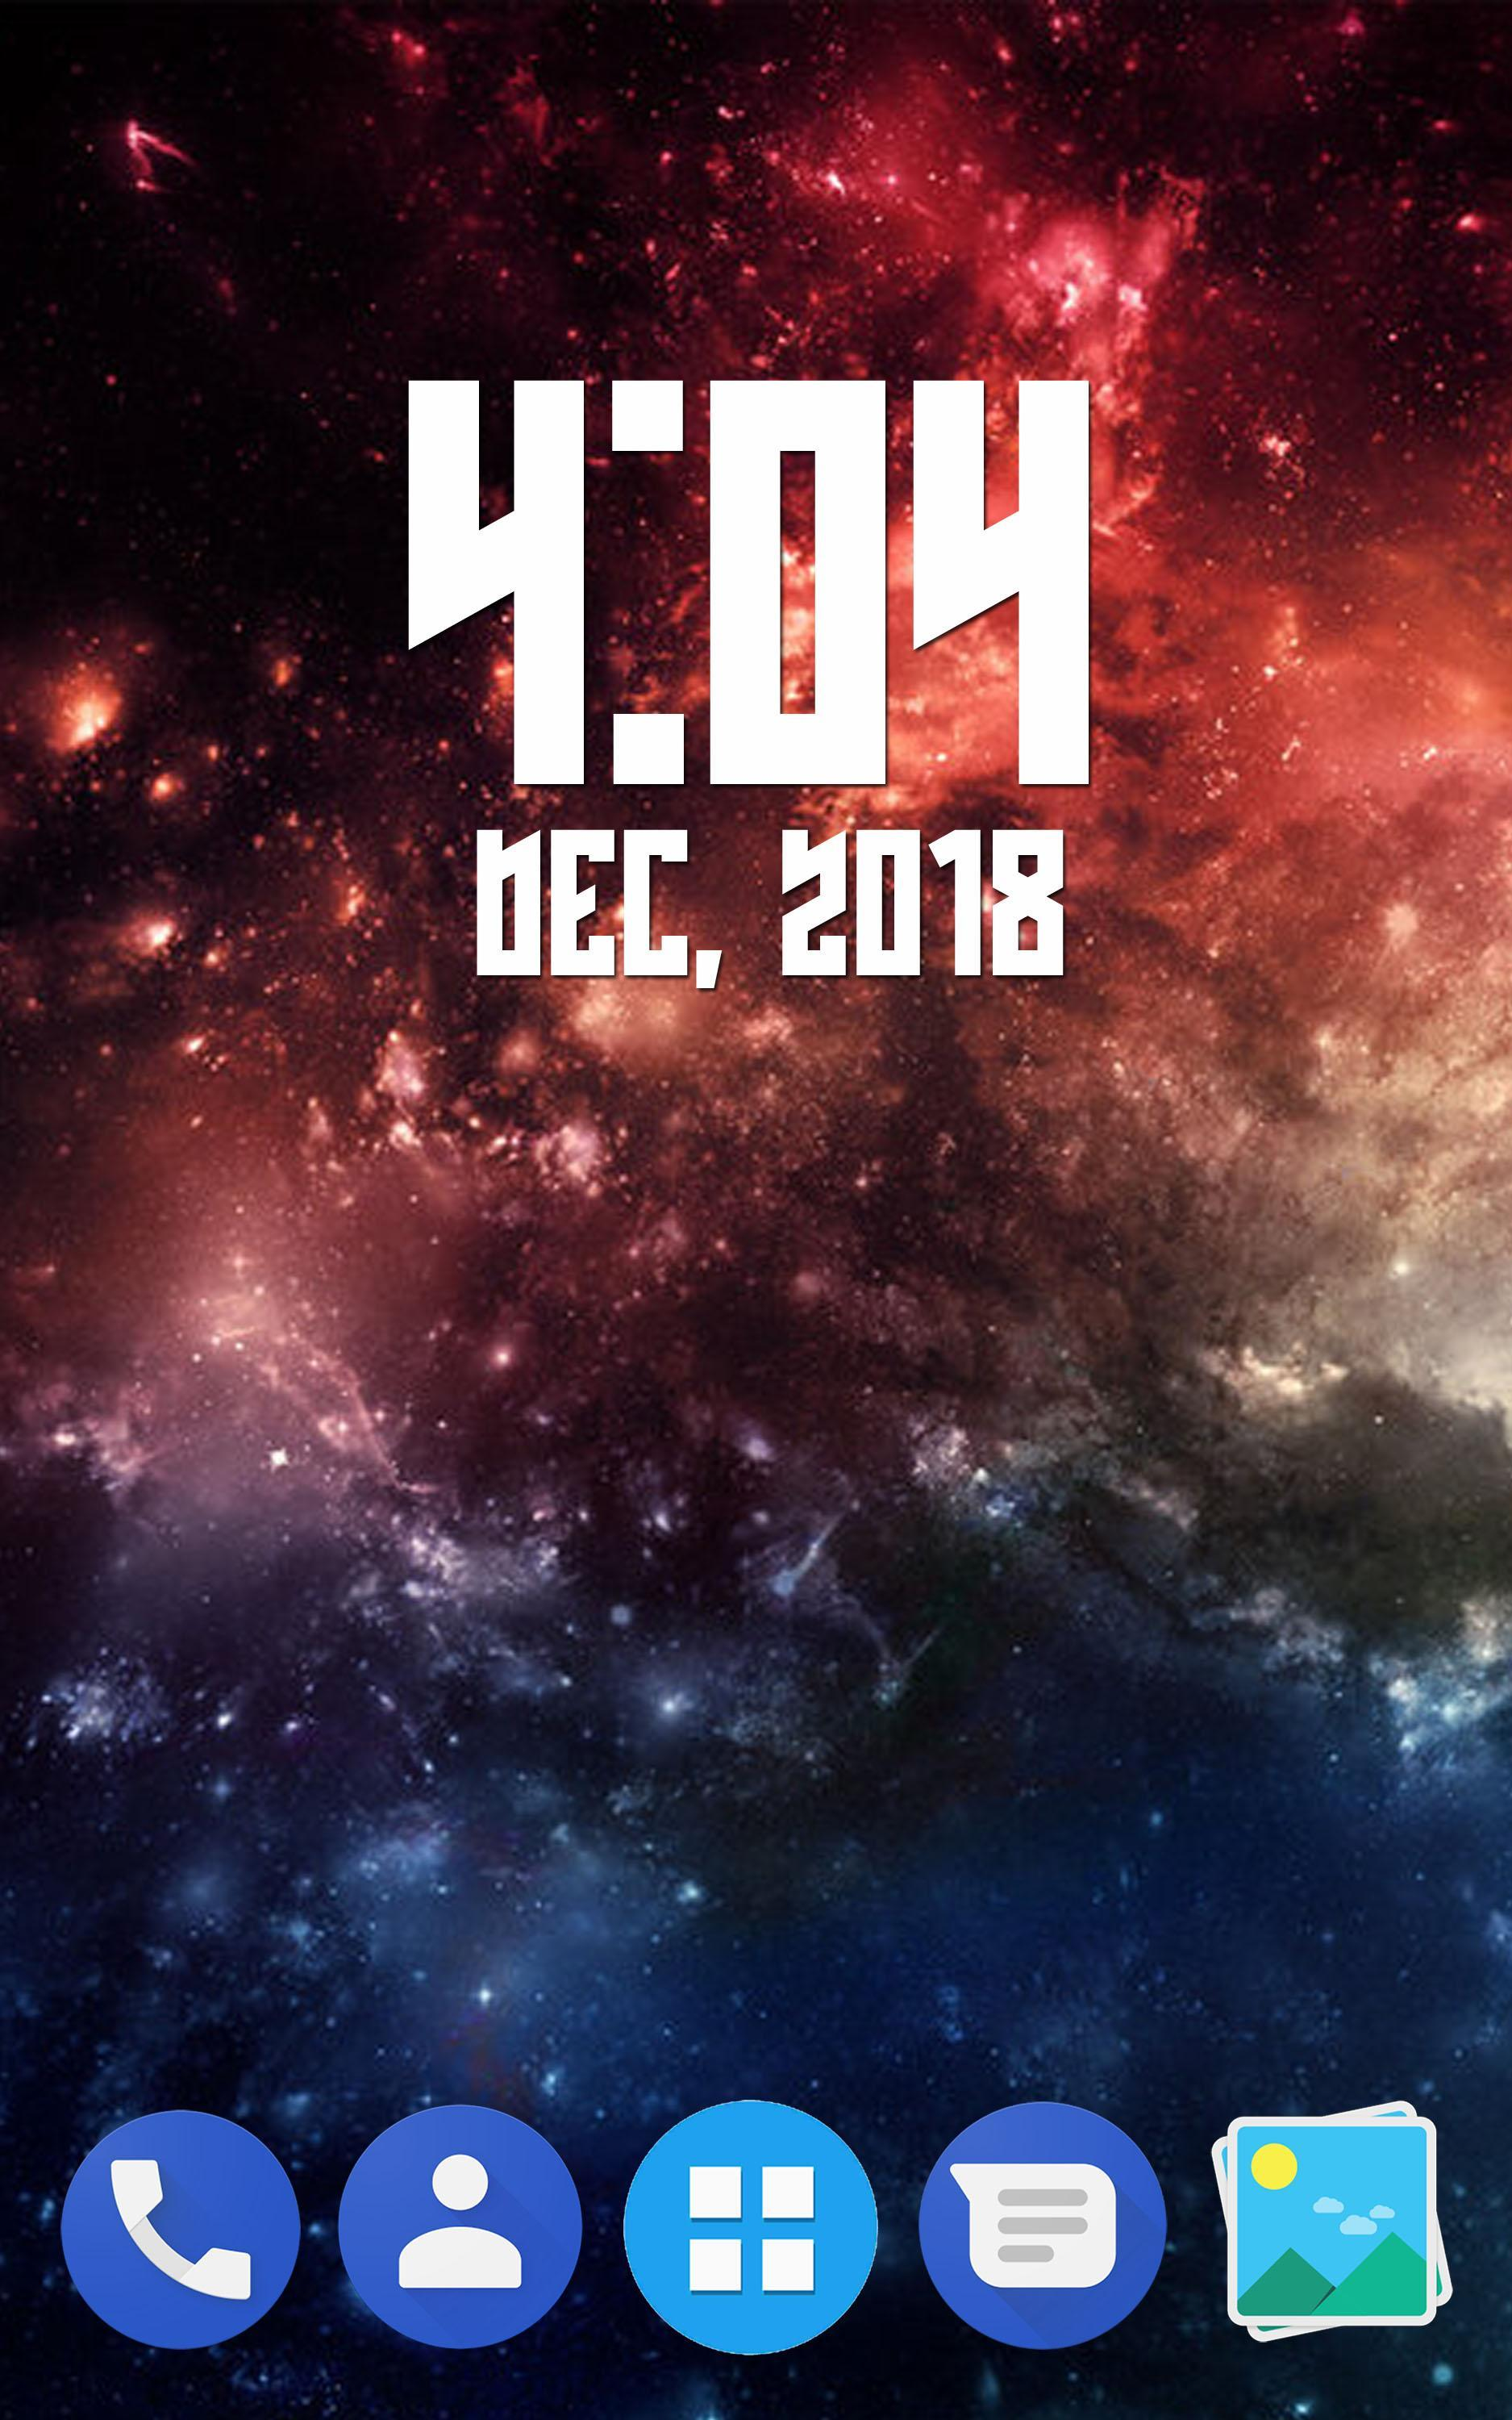 Hd Cool Galaxy Wallpaper For Android Apk Download